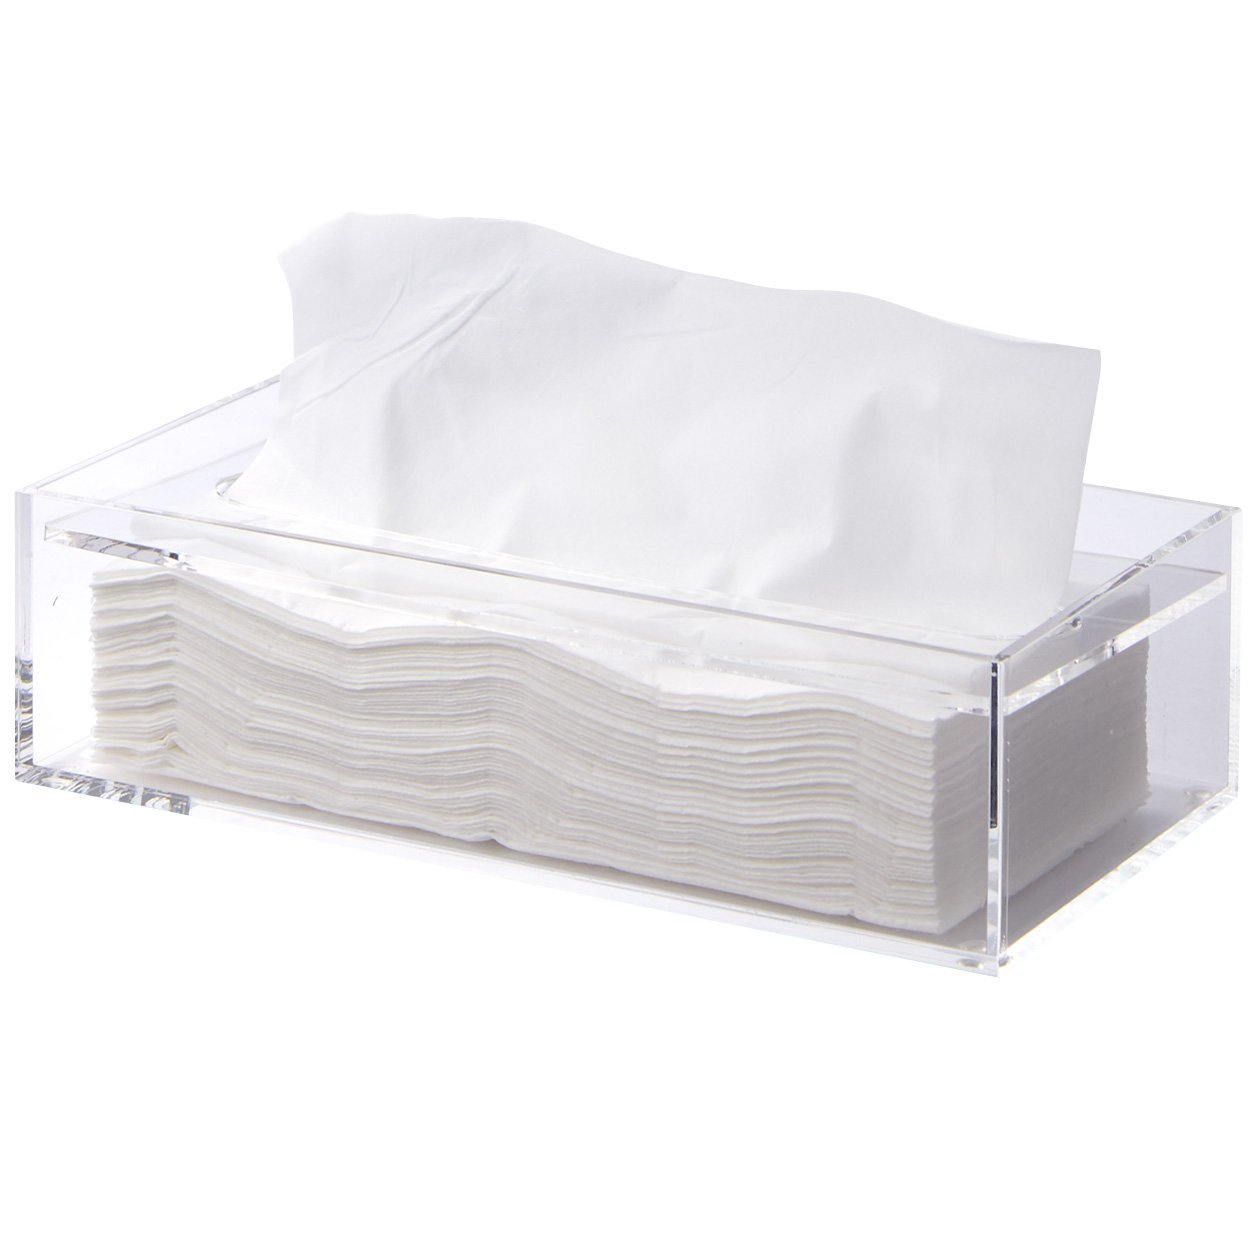 MUJI Clear Acrylic Bathroom Facial Tissue Dispenser Box Storage Case Cover Container / Decorative Napkin Holder by Muji